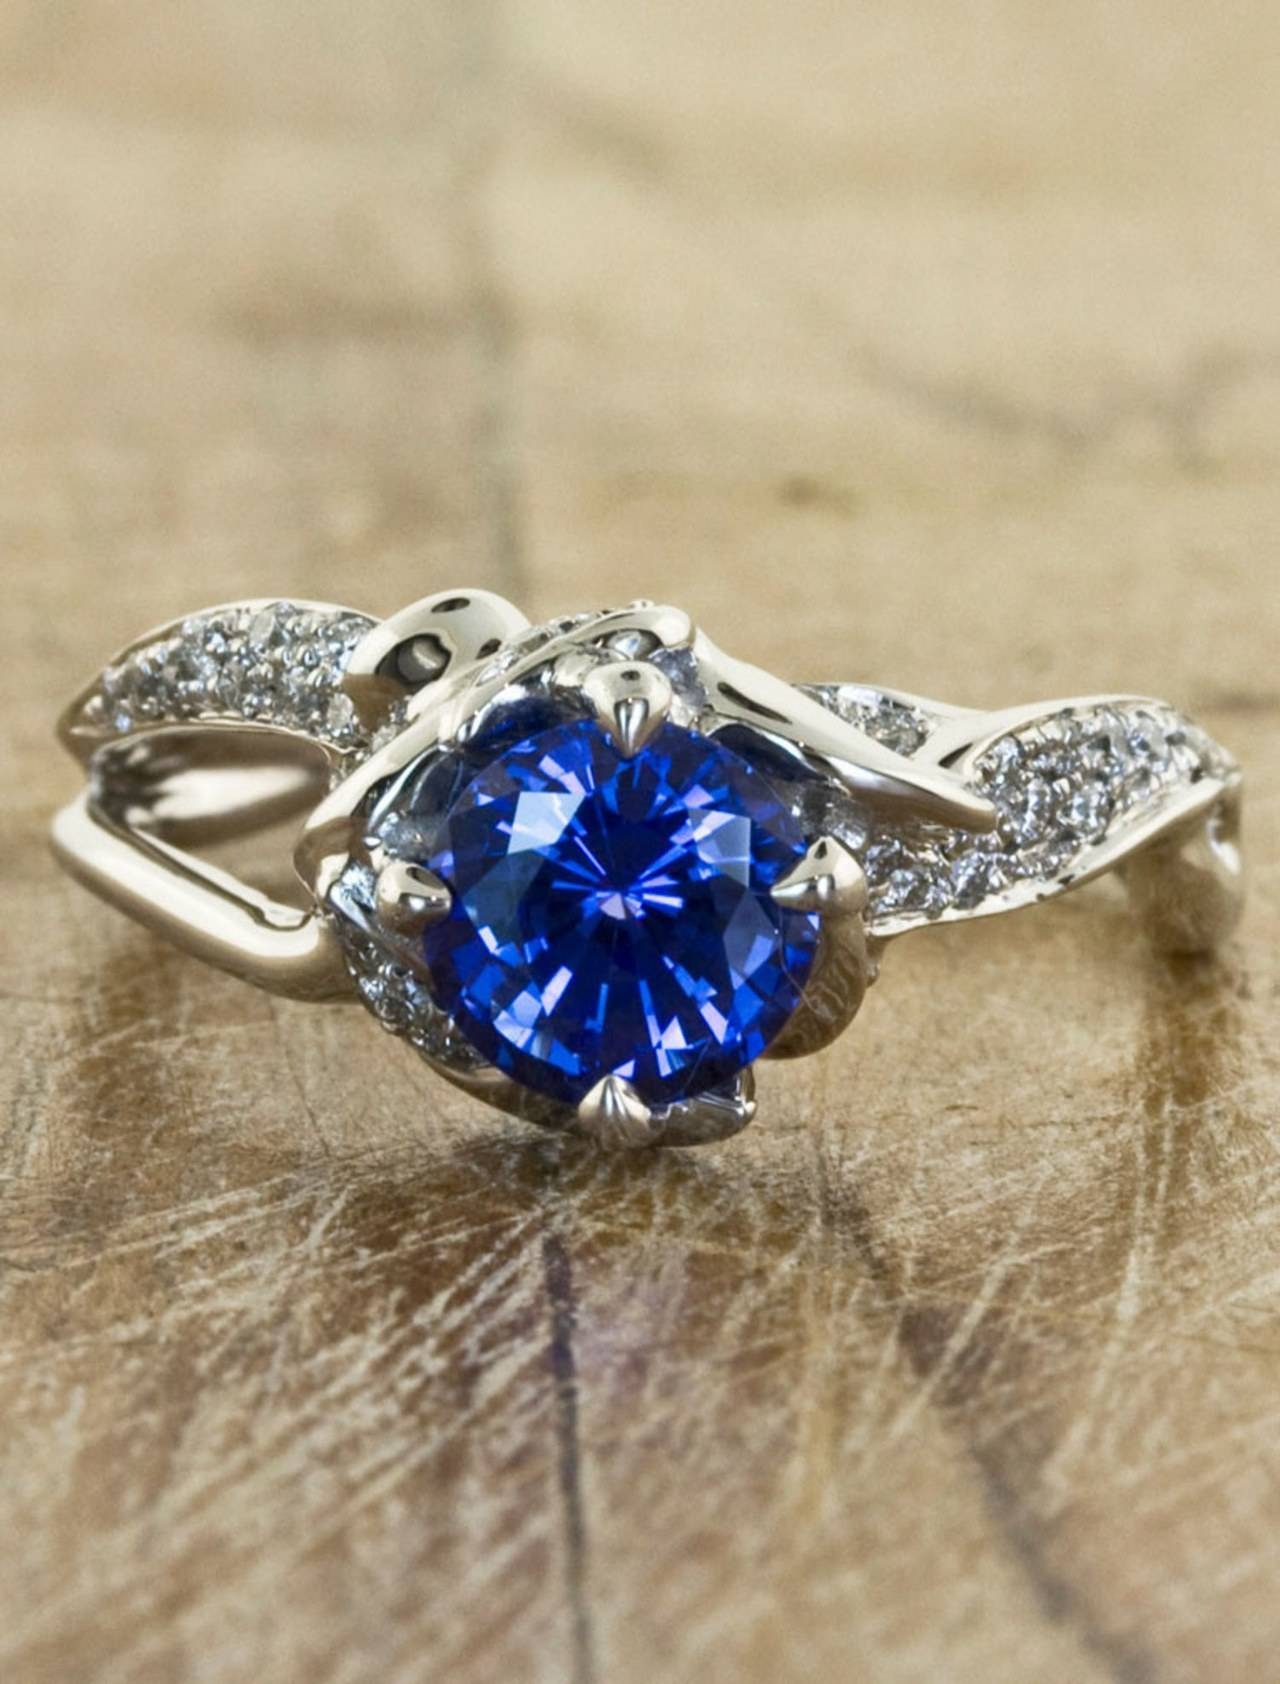 Unique Engagement Rings: Rustic Engagement Rings, Eco Friendly Throughout Unique Engagement Rings (View 15 of 15)